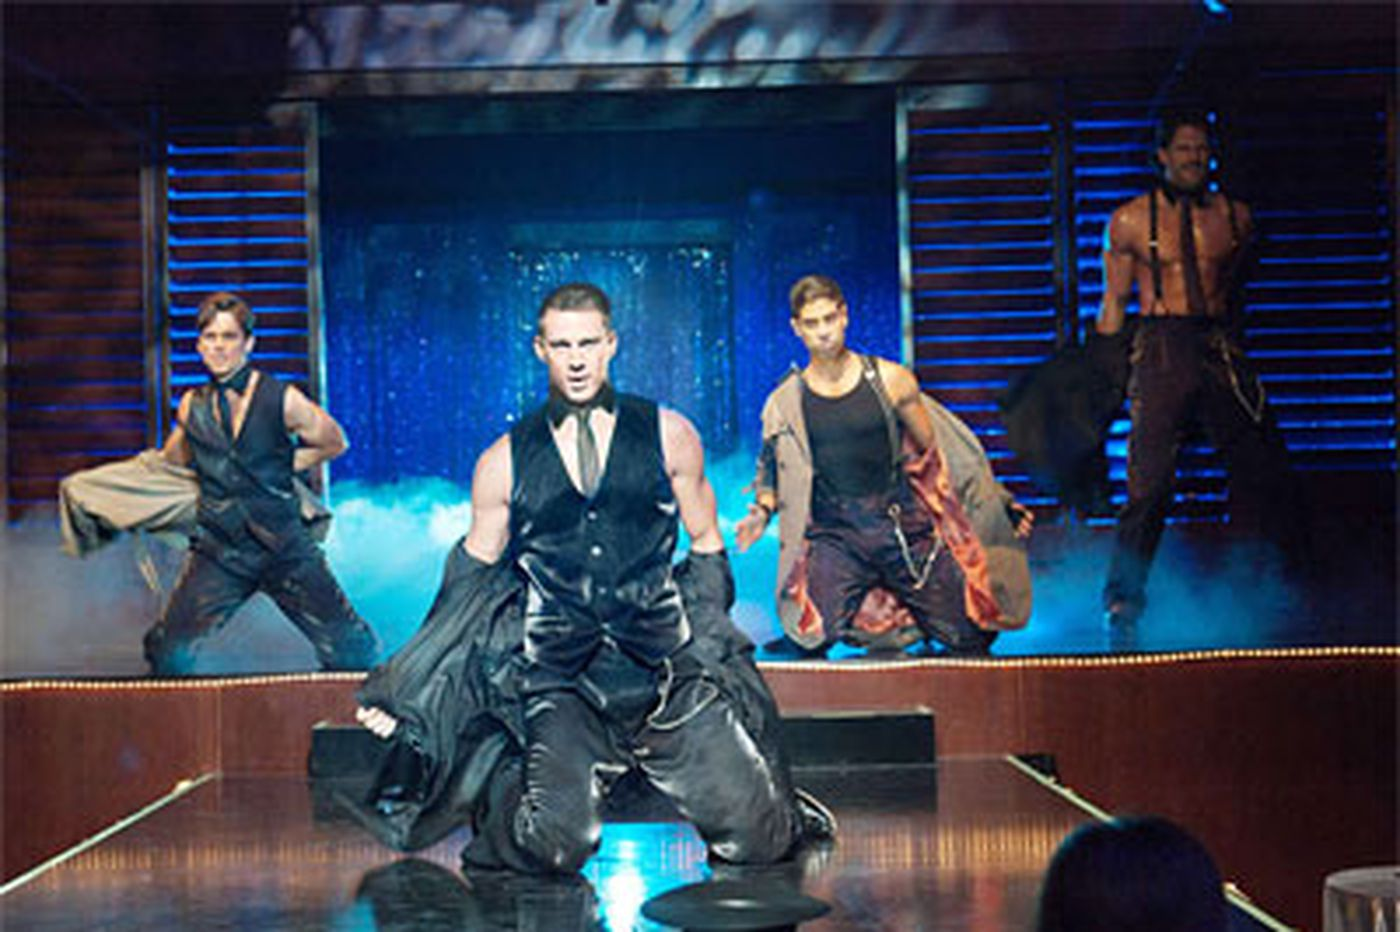 'Magic Mike': A backstage look at male strippers